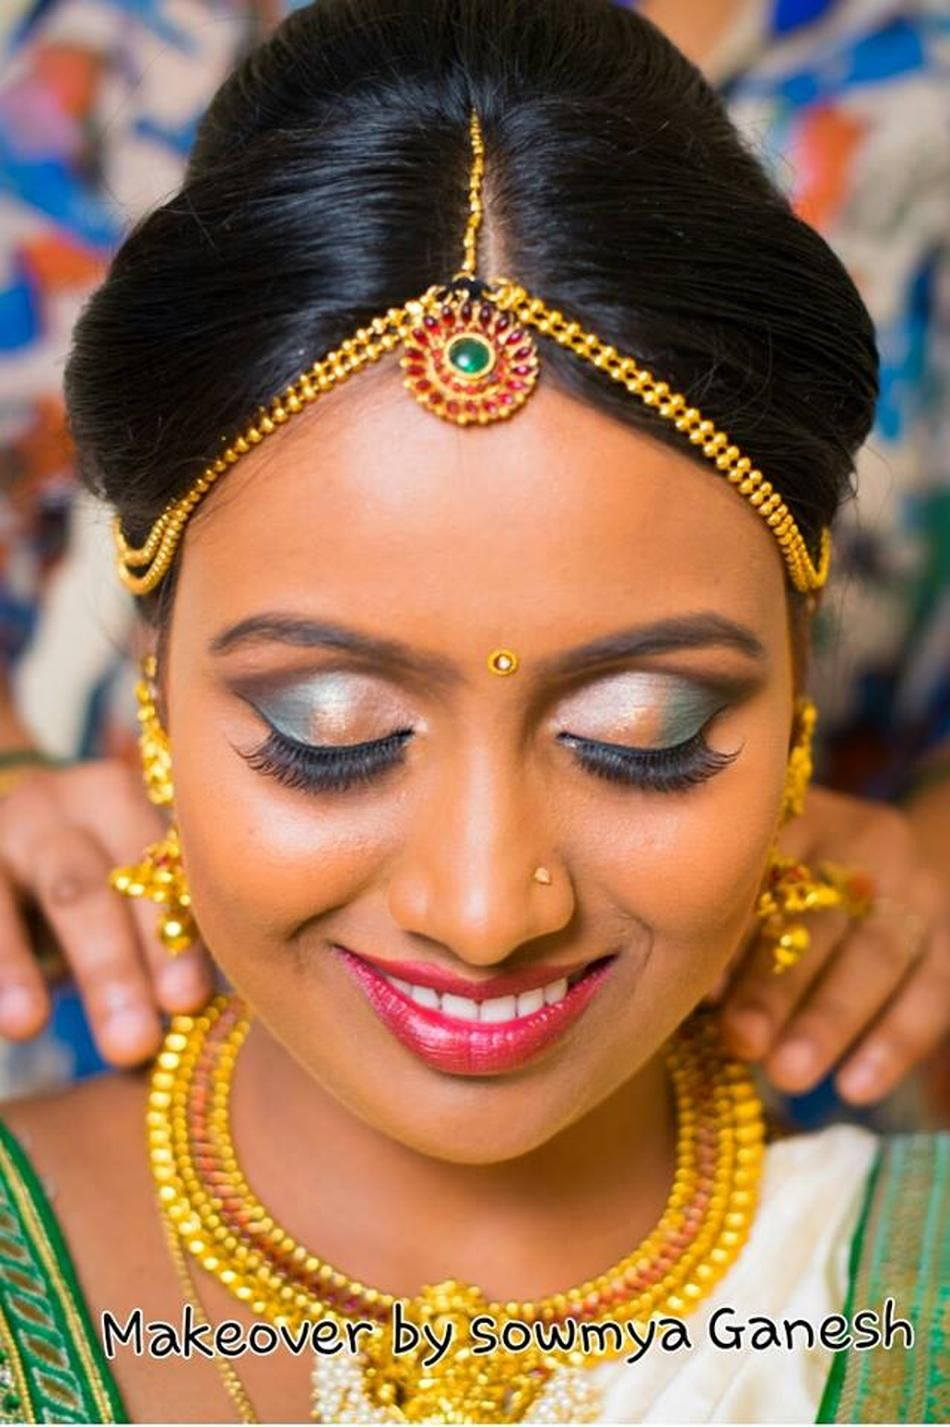 Book Makeovers by Sowmya Ganesh for your wedding Makeup